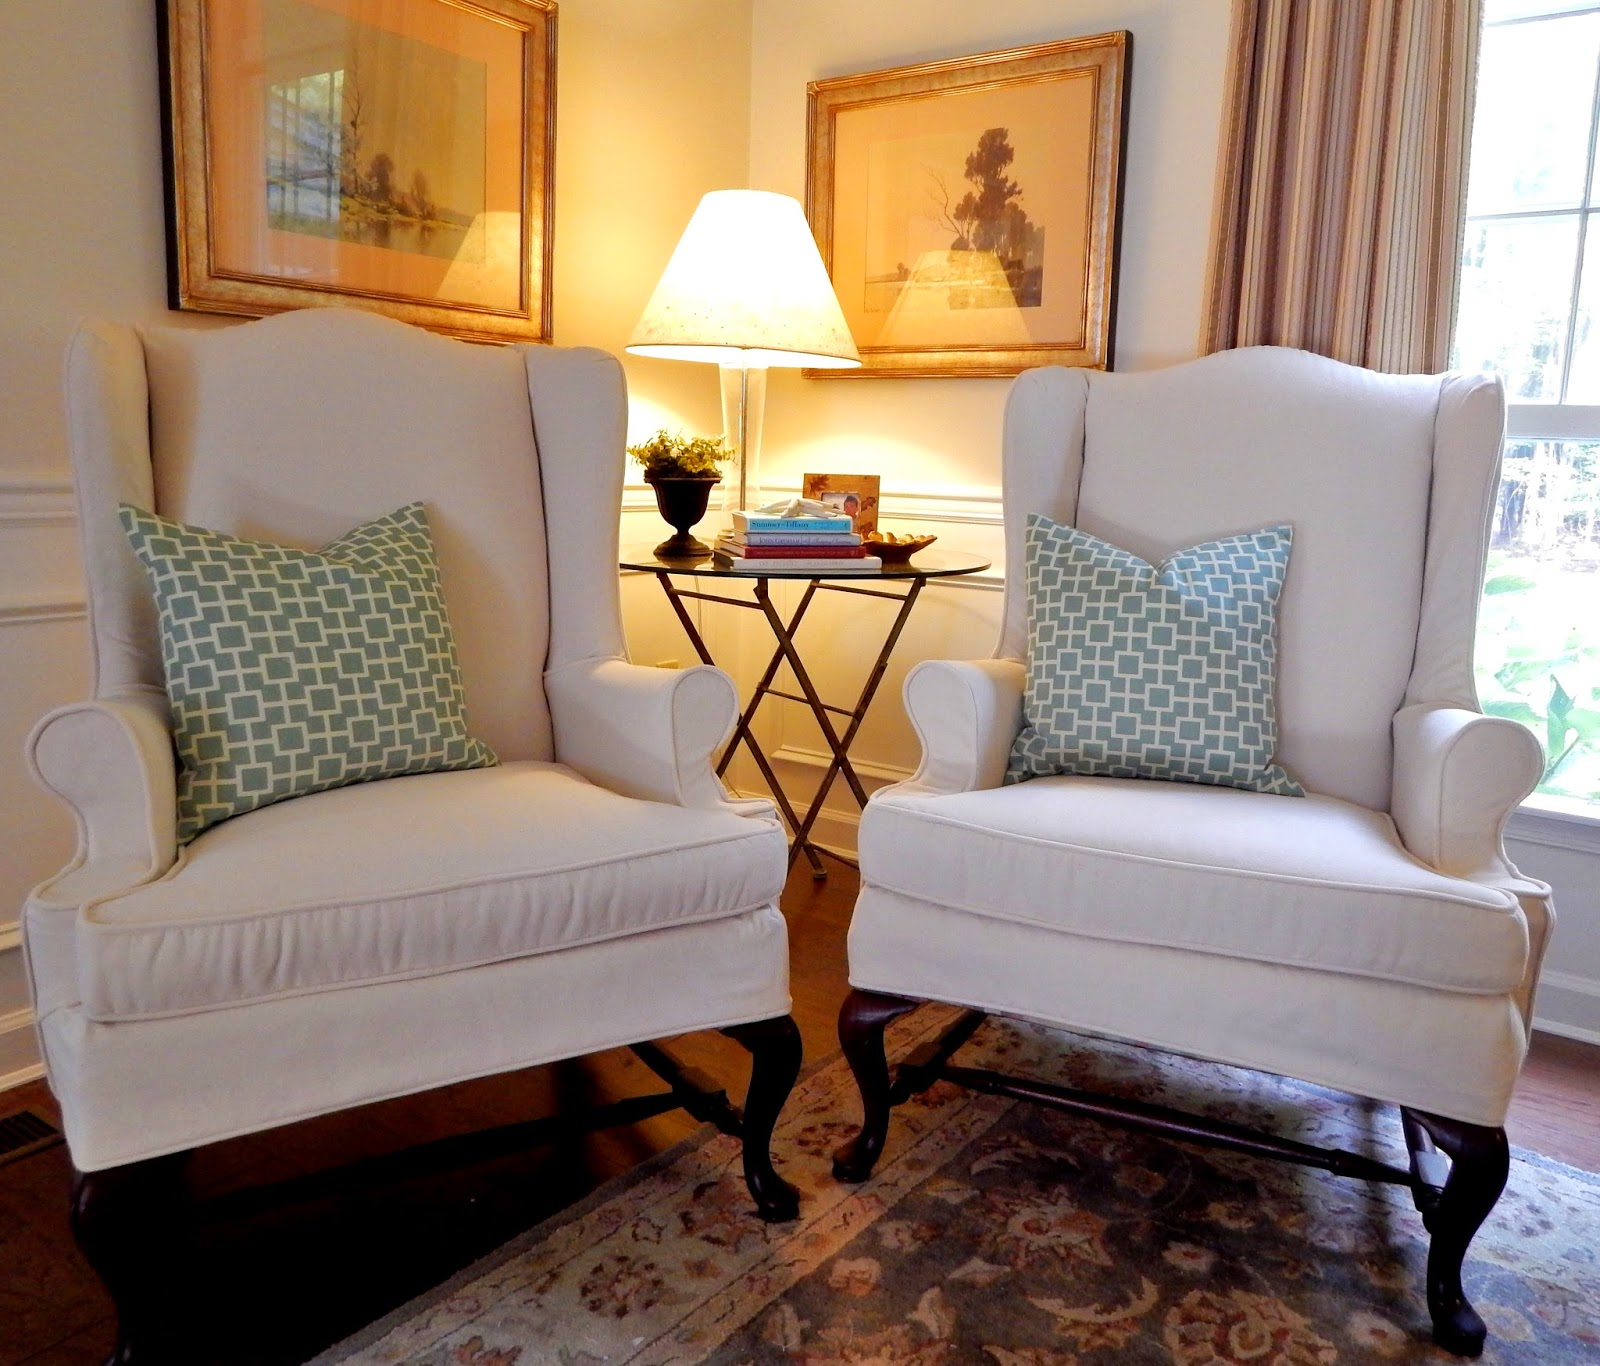 slipcovers design elisha with window treatments banding camille chair fabrication howell chairs parson pin by slipcover contrast moore